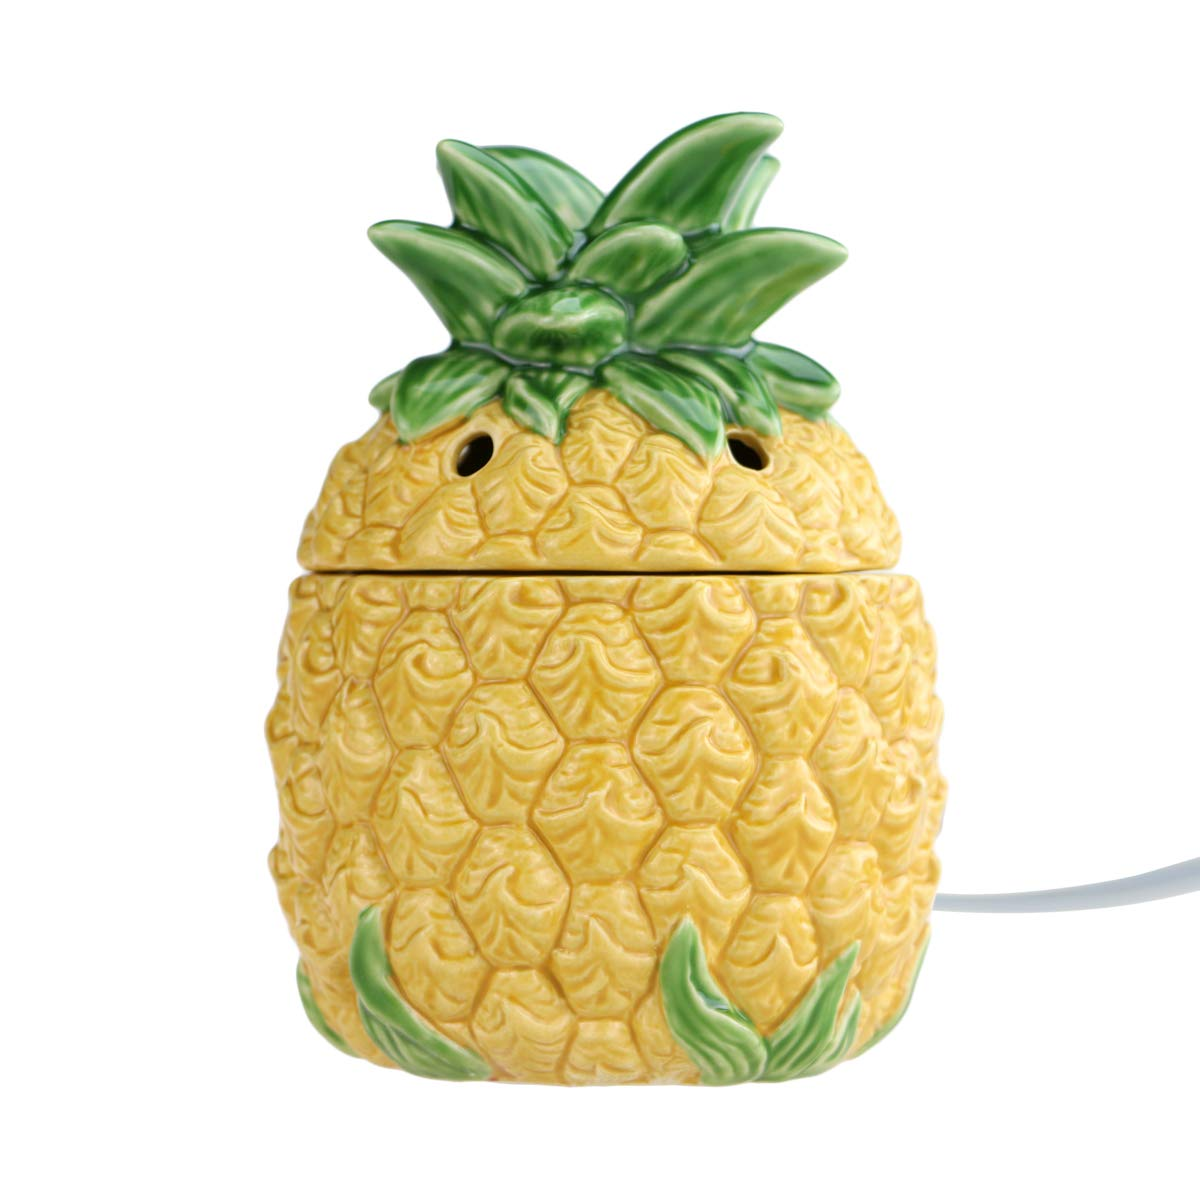 STAR MOON Wax Melt Warmer Electric, Candle Warmer for Wax Melt, Home Fragrance Diffuser, Home Décor, No Flame, with Ceramic Warming Plate (Pineapple)